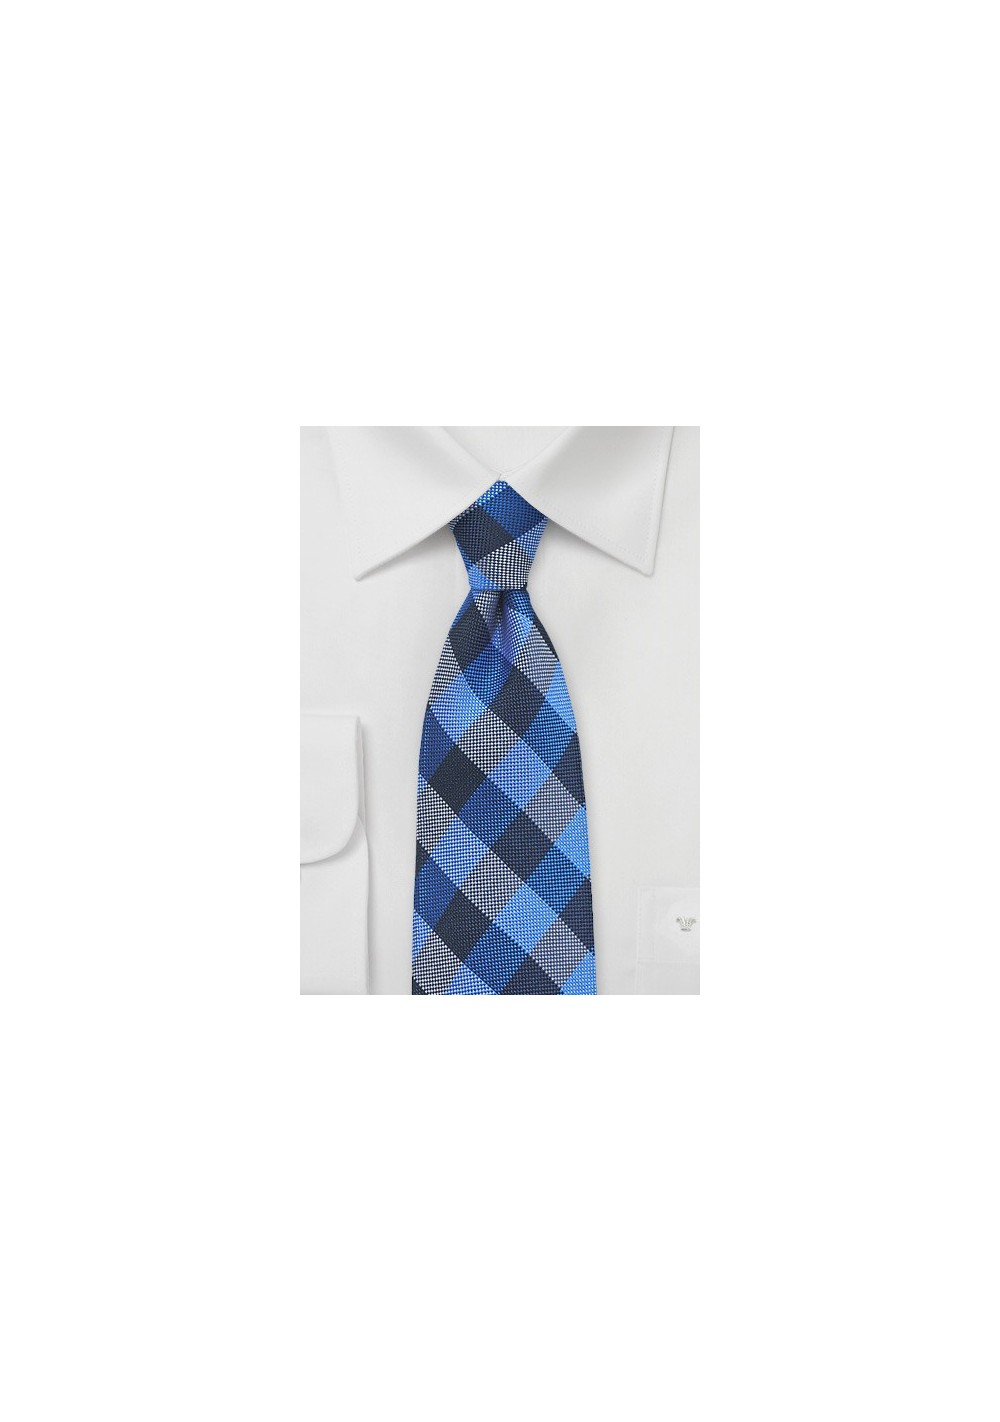 Horizon Blue and Navy Gingham Tie